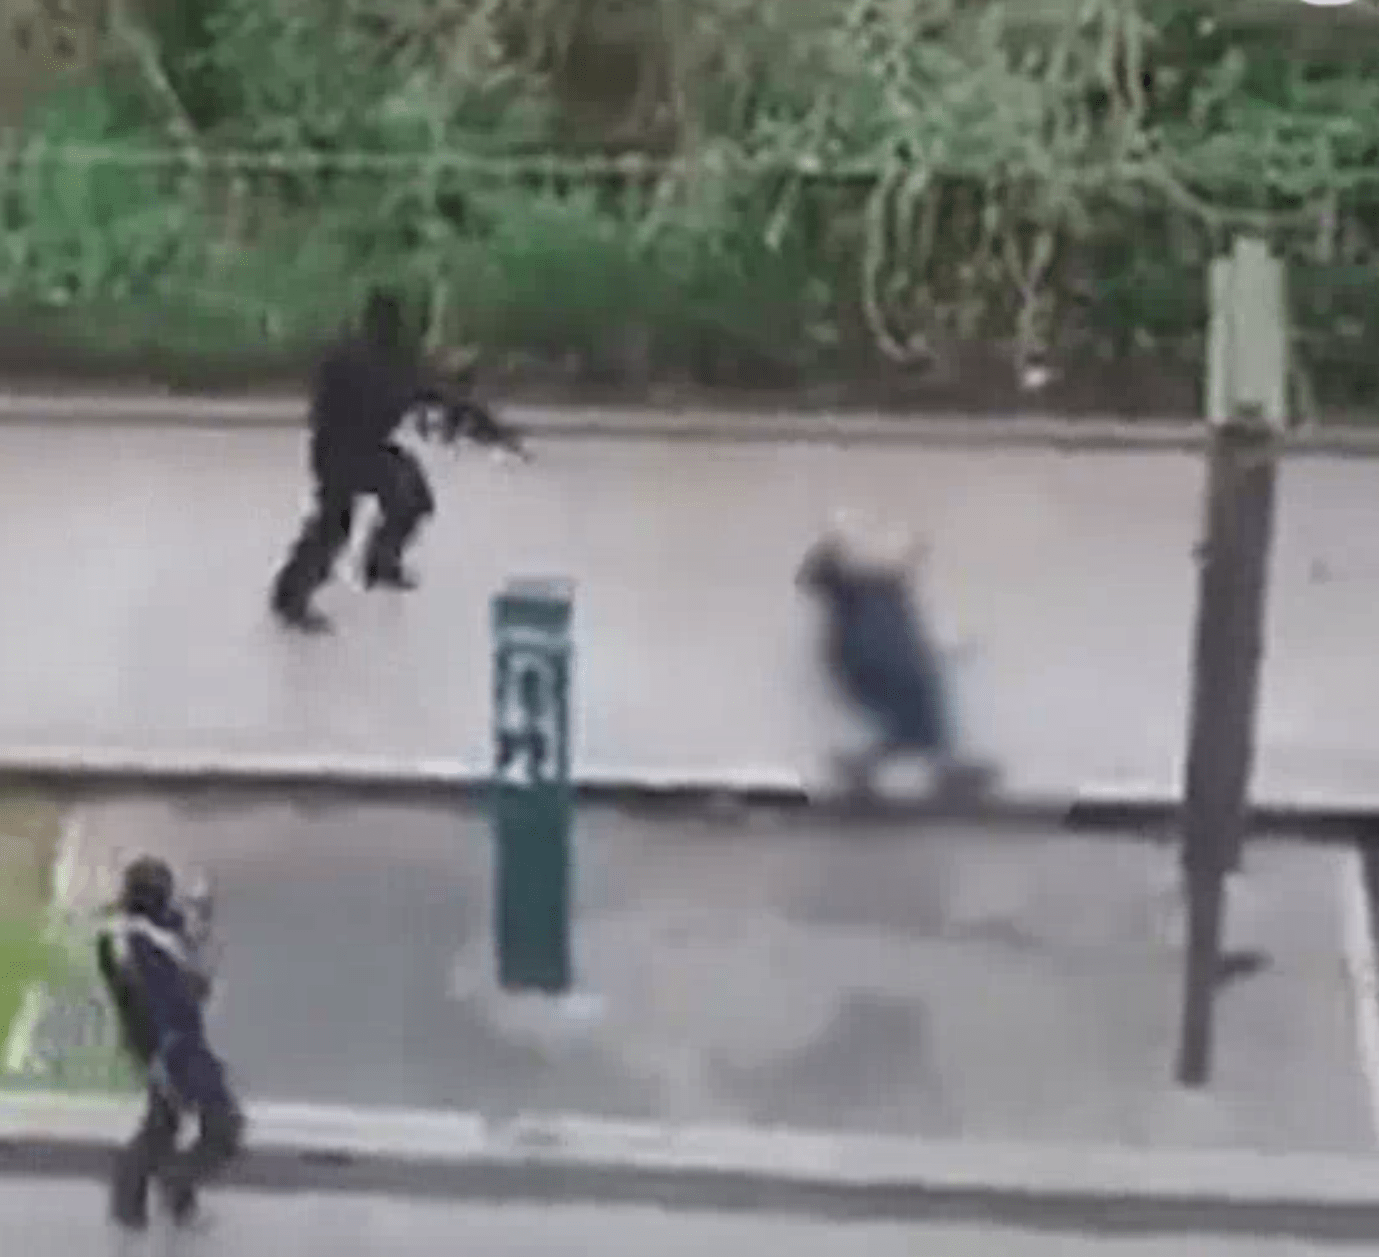 Charlie Hebdo - murder of injured french police officer